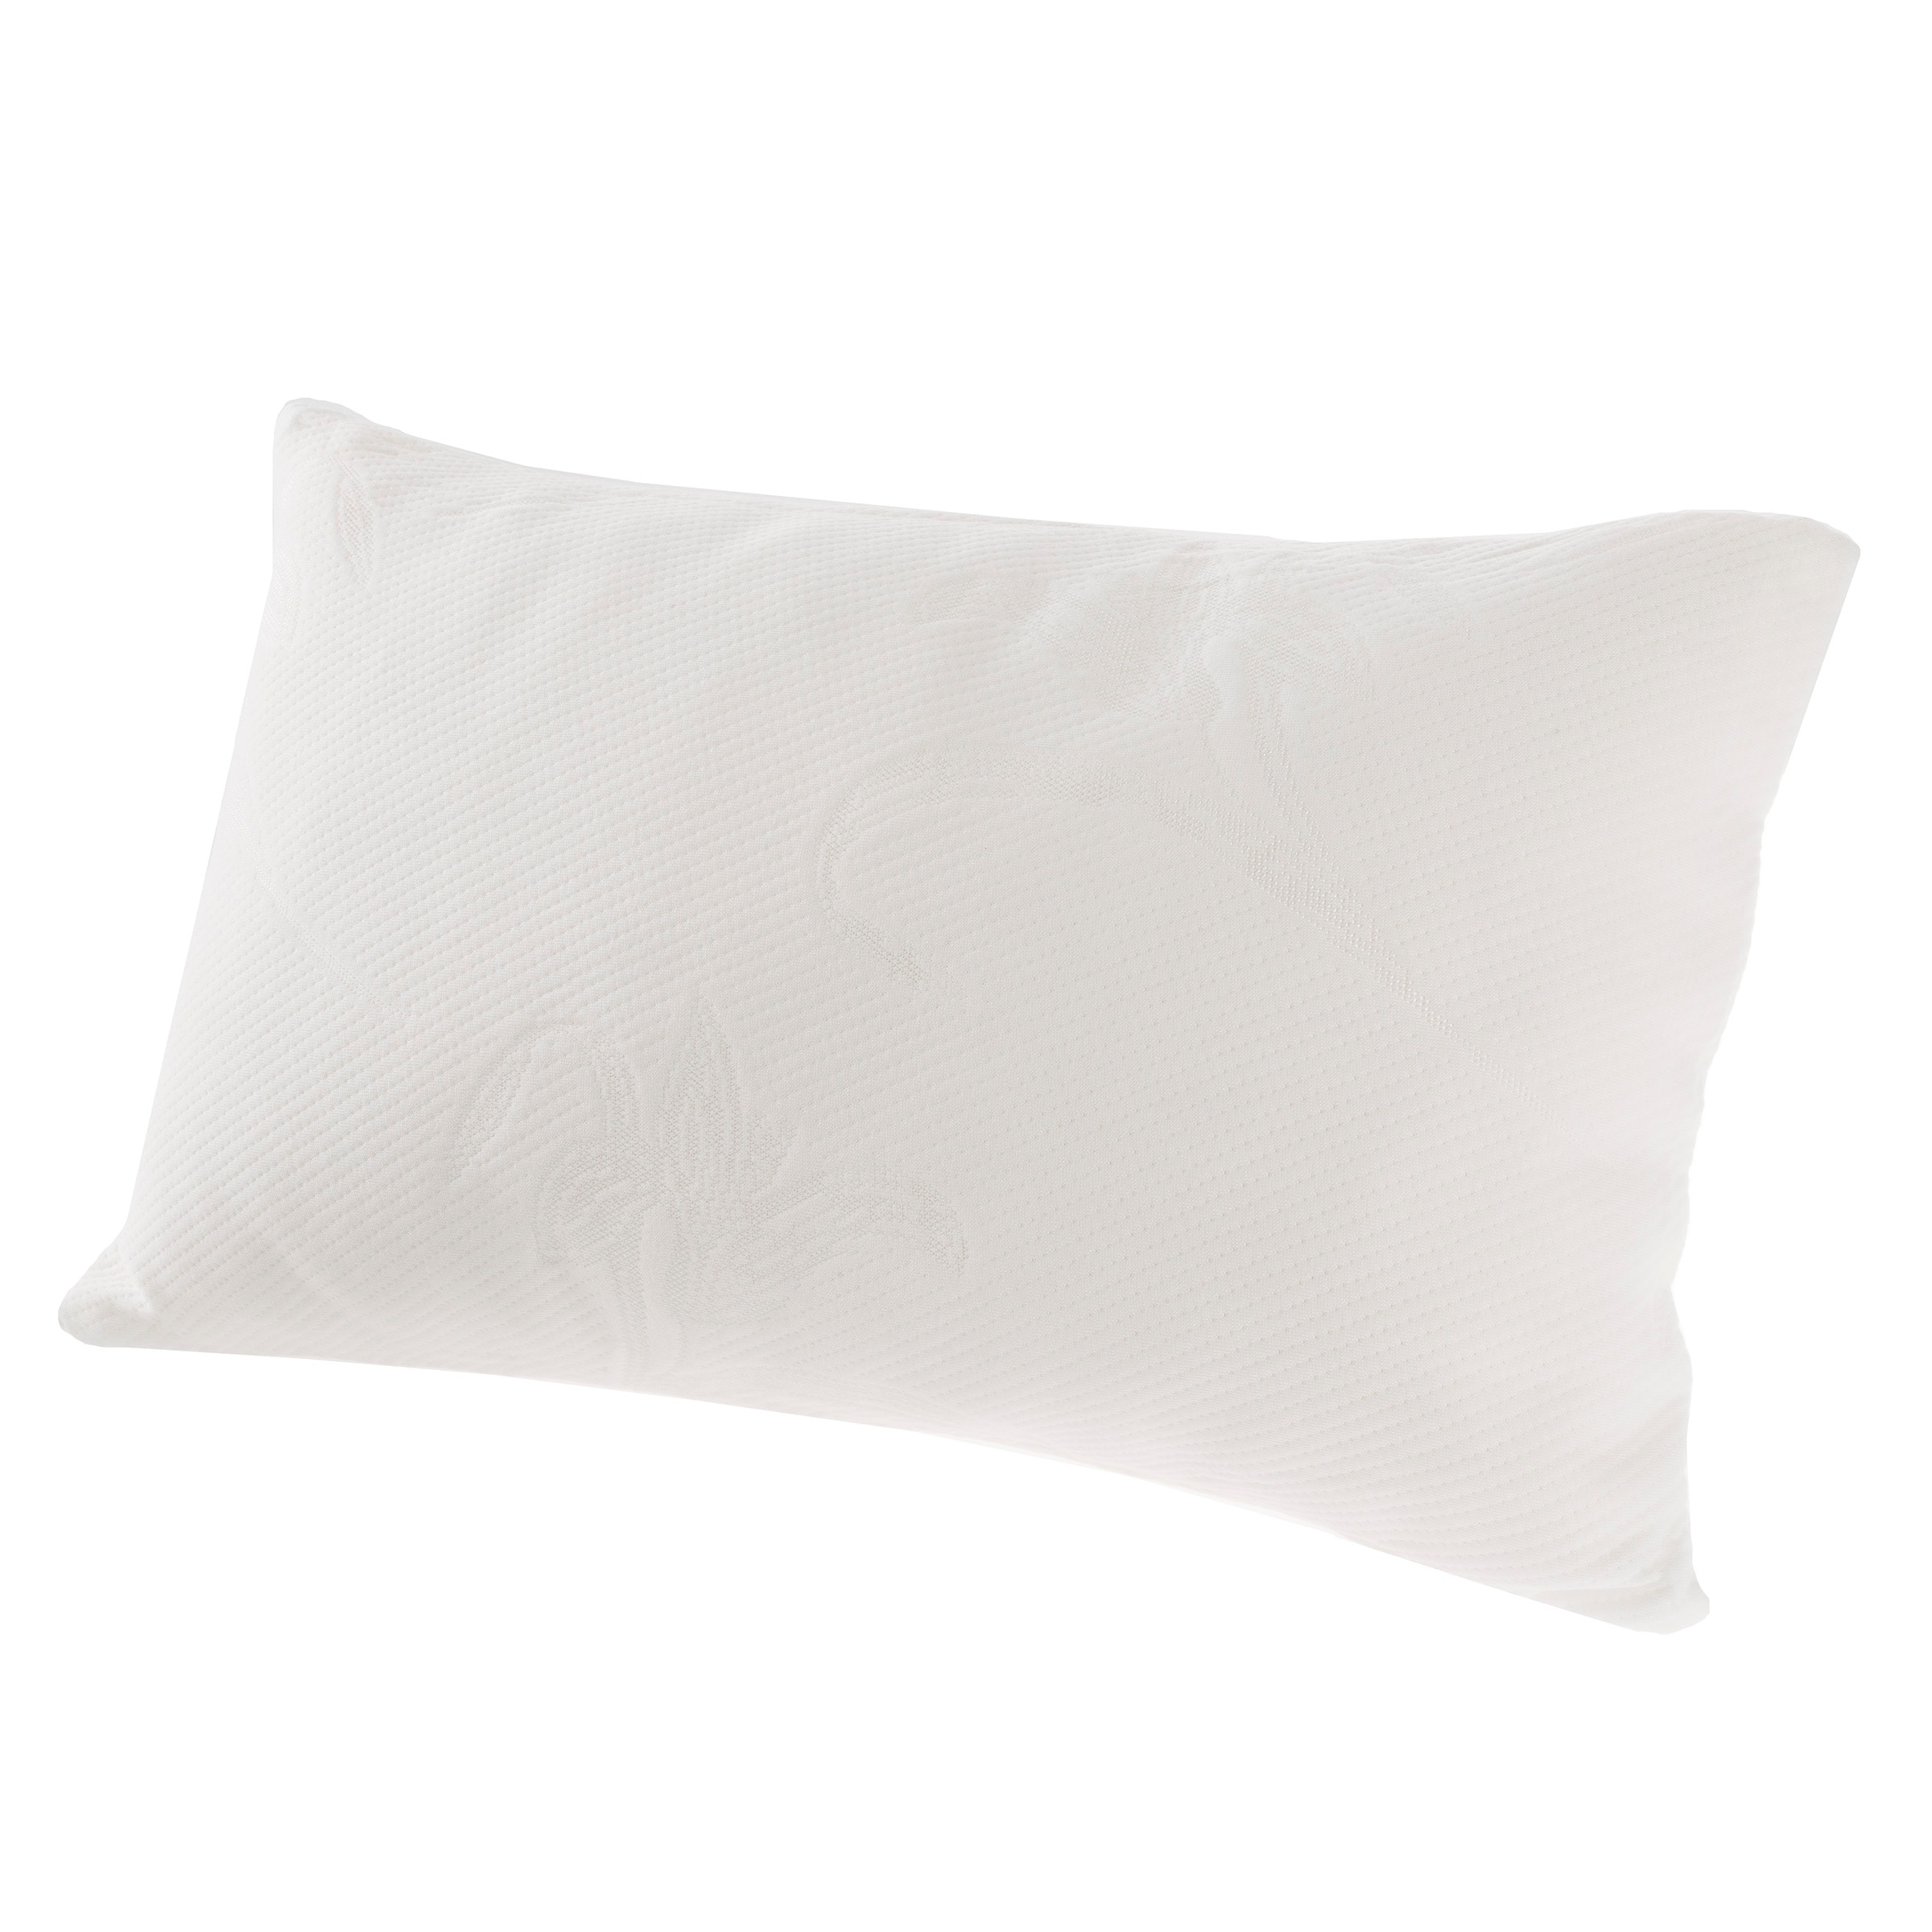 Firm Memory Foam Pillow Toddler Pillow Shredded Memory Foam Pillow Medium Firm 21 Inches X 14 Inches By Everyday Home